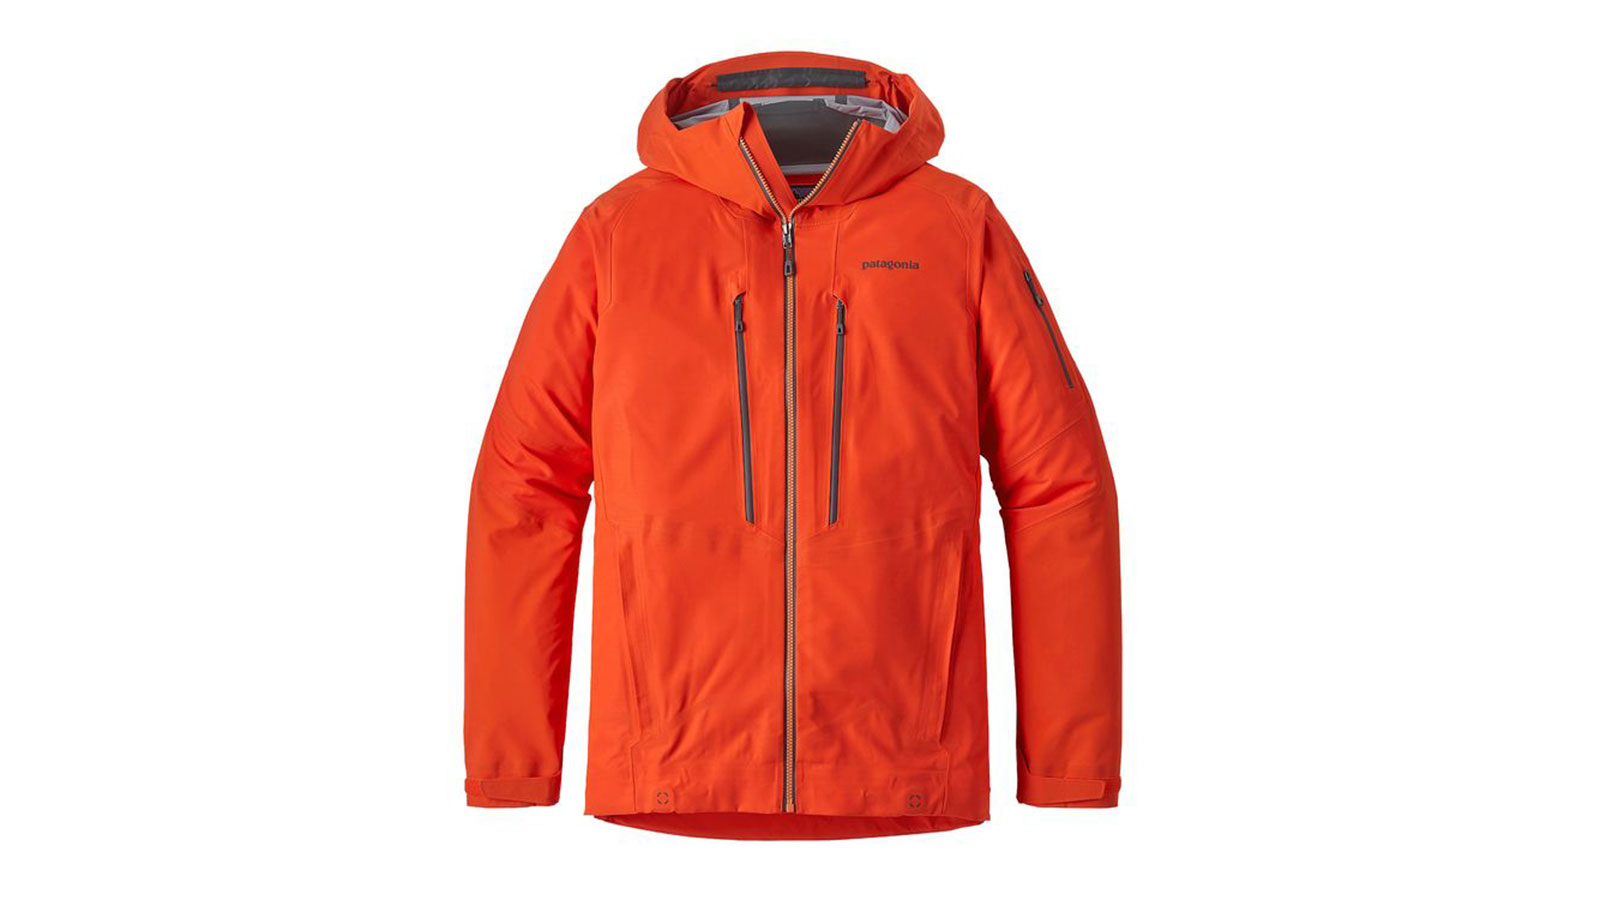 Patagonia Men's Reconnaissance Men's Ski Jacket | The Best Men's Ski Jackets